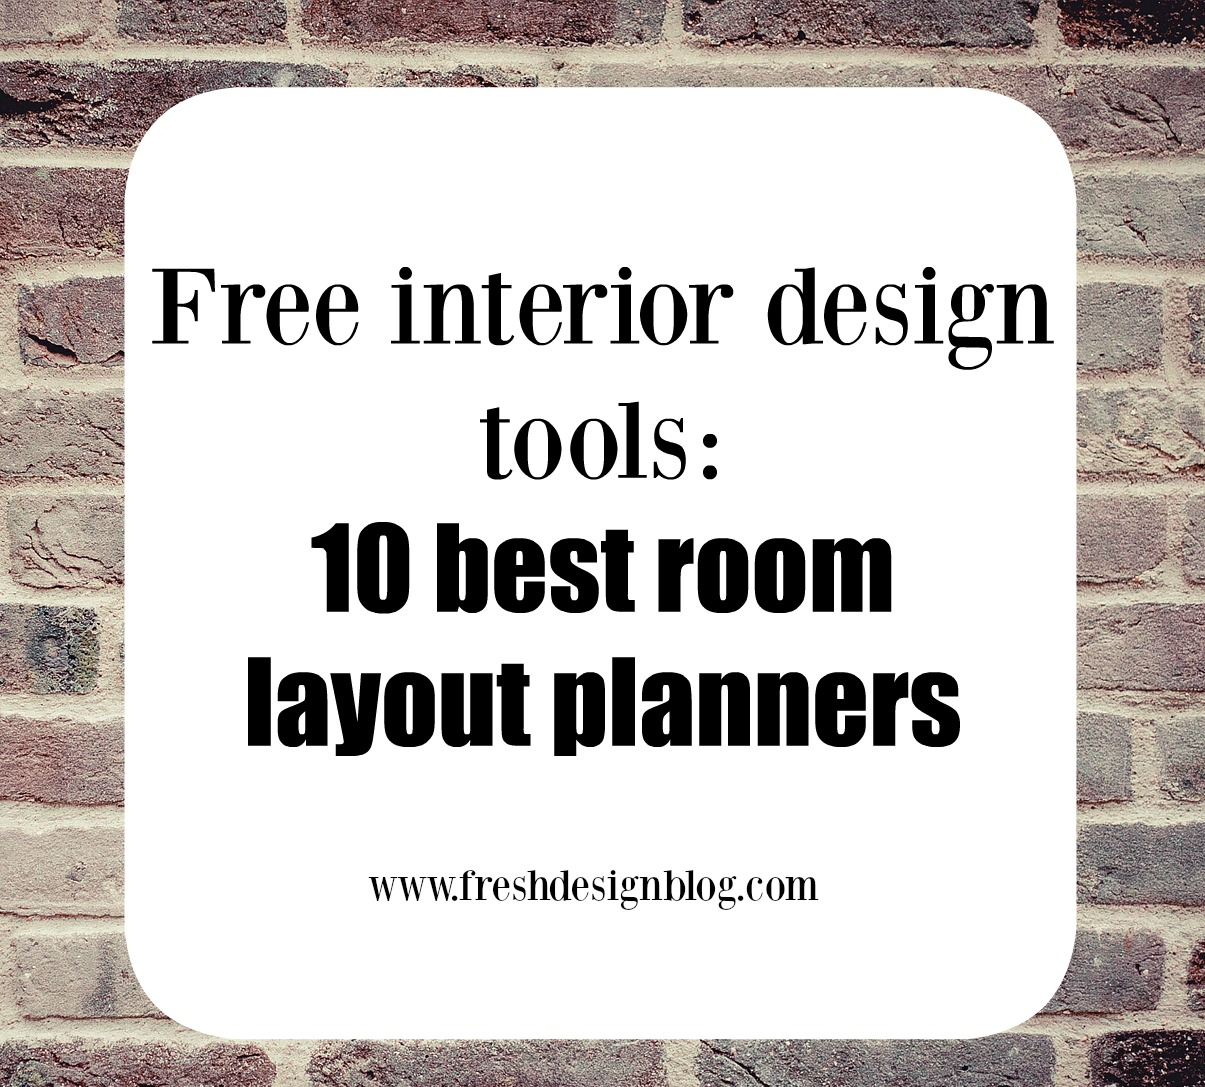 learn how to re design and plan a room using these fab free interior - Interior Design Room Planner Free